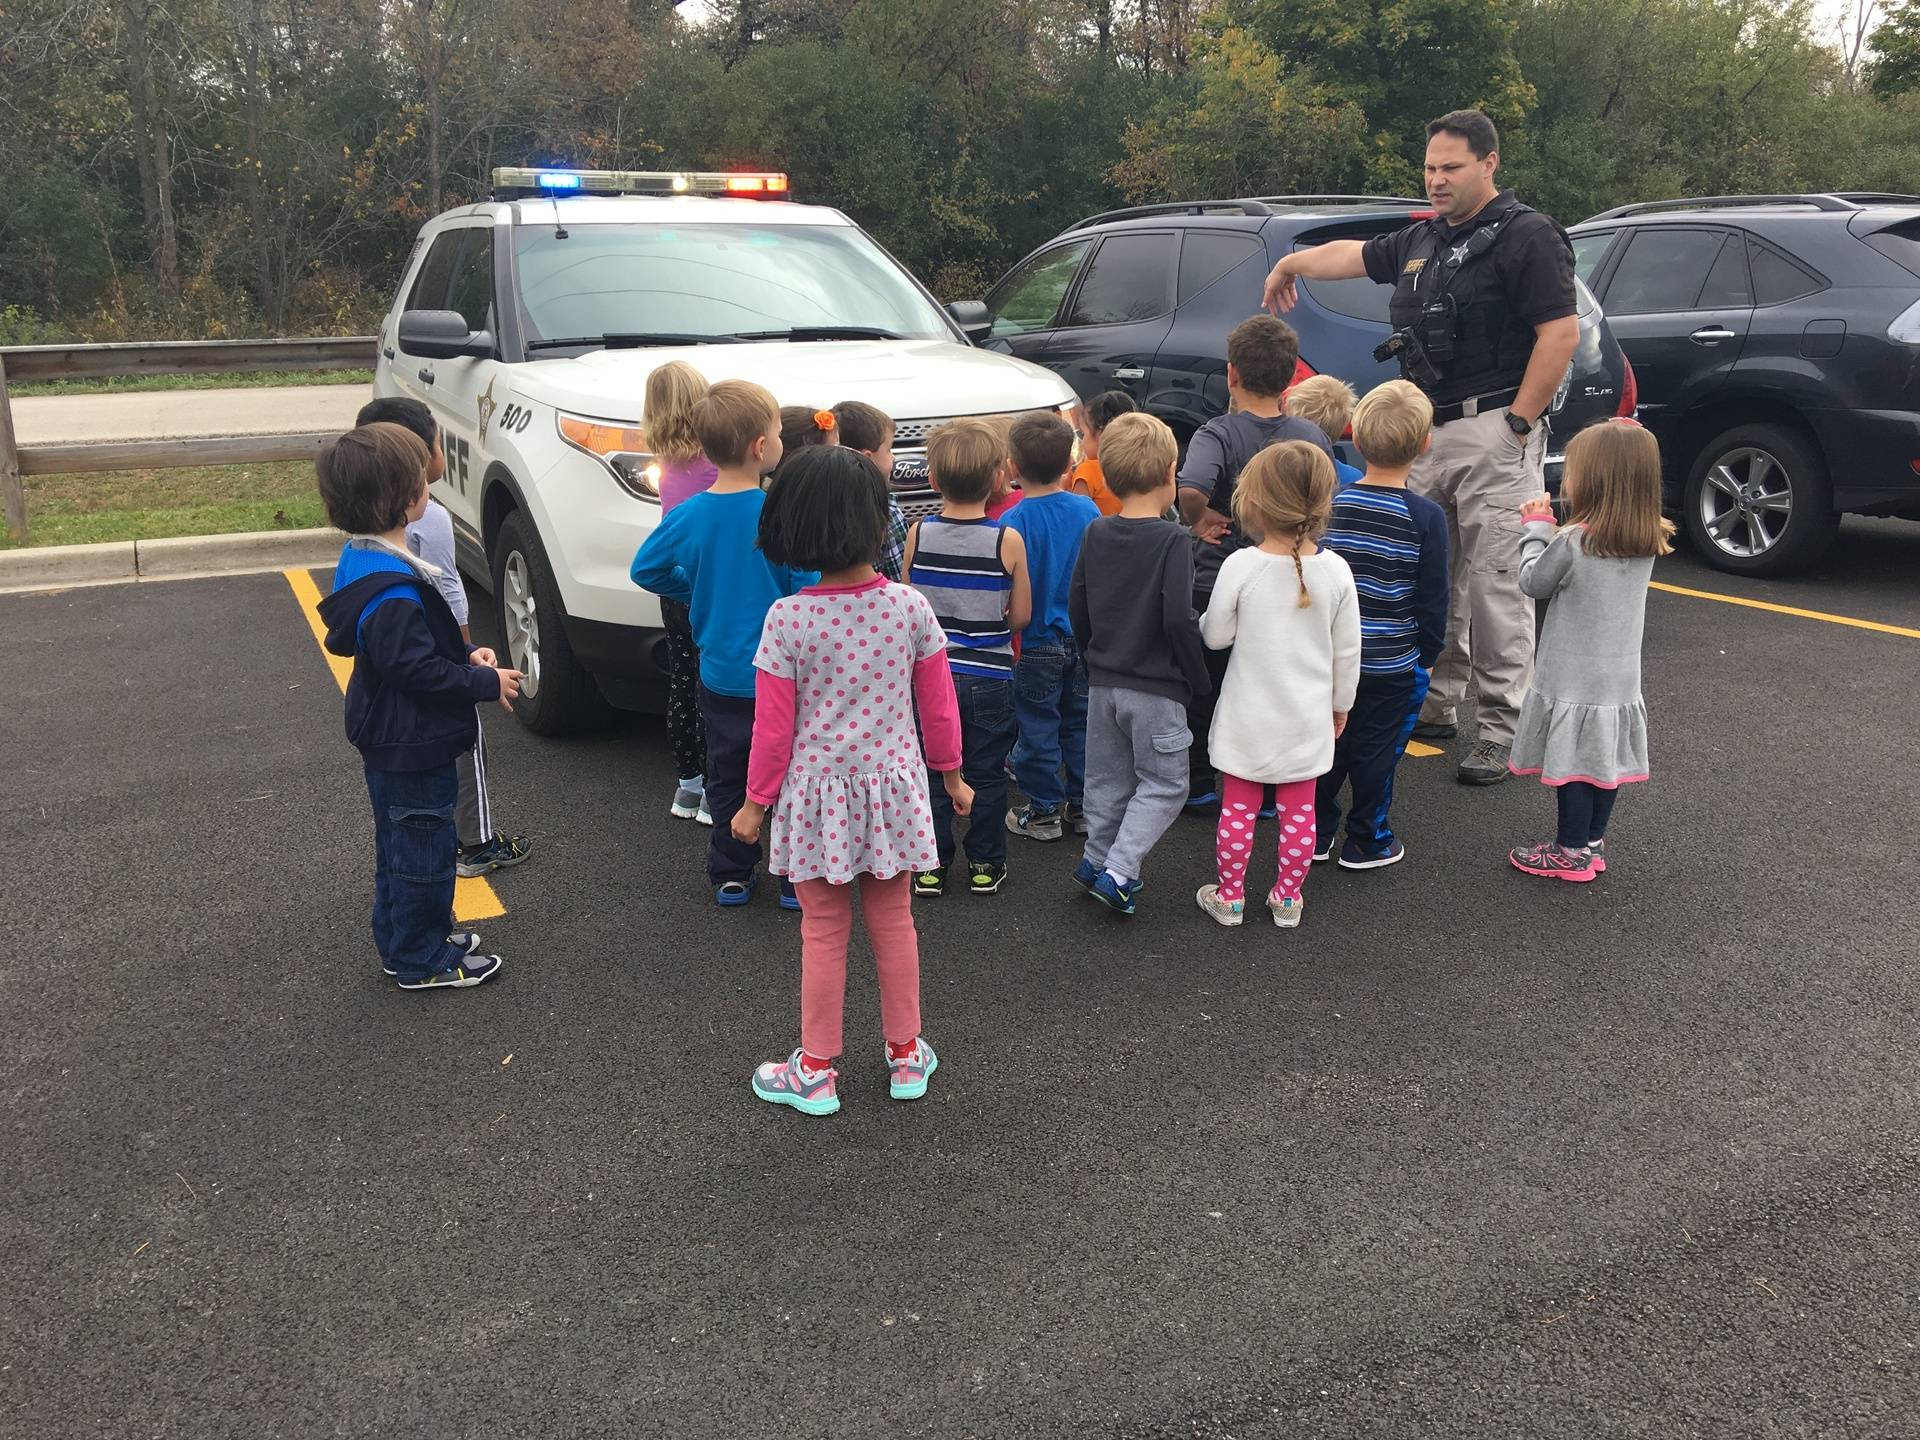 We had a great visit with Deputy Roman. We got to see all the cool things he wears and even got to hear his police sirens and see the flashing lights.